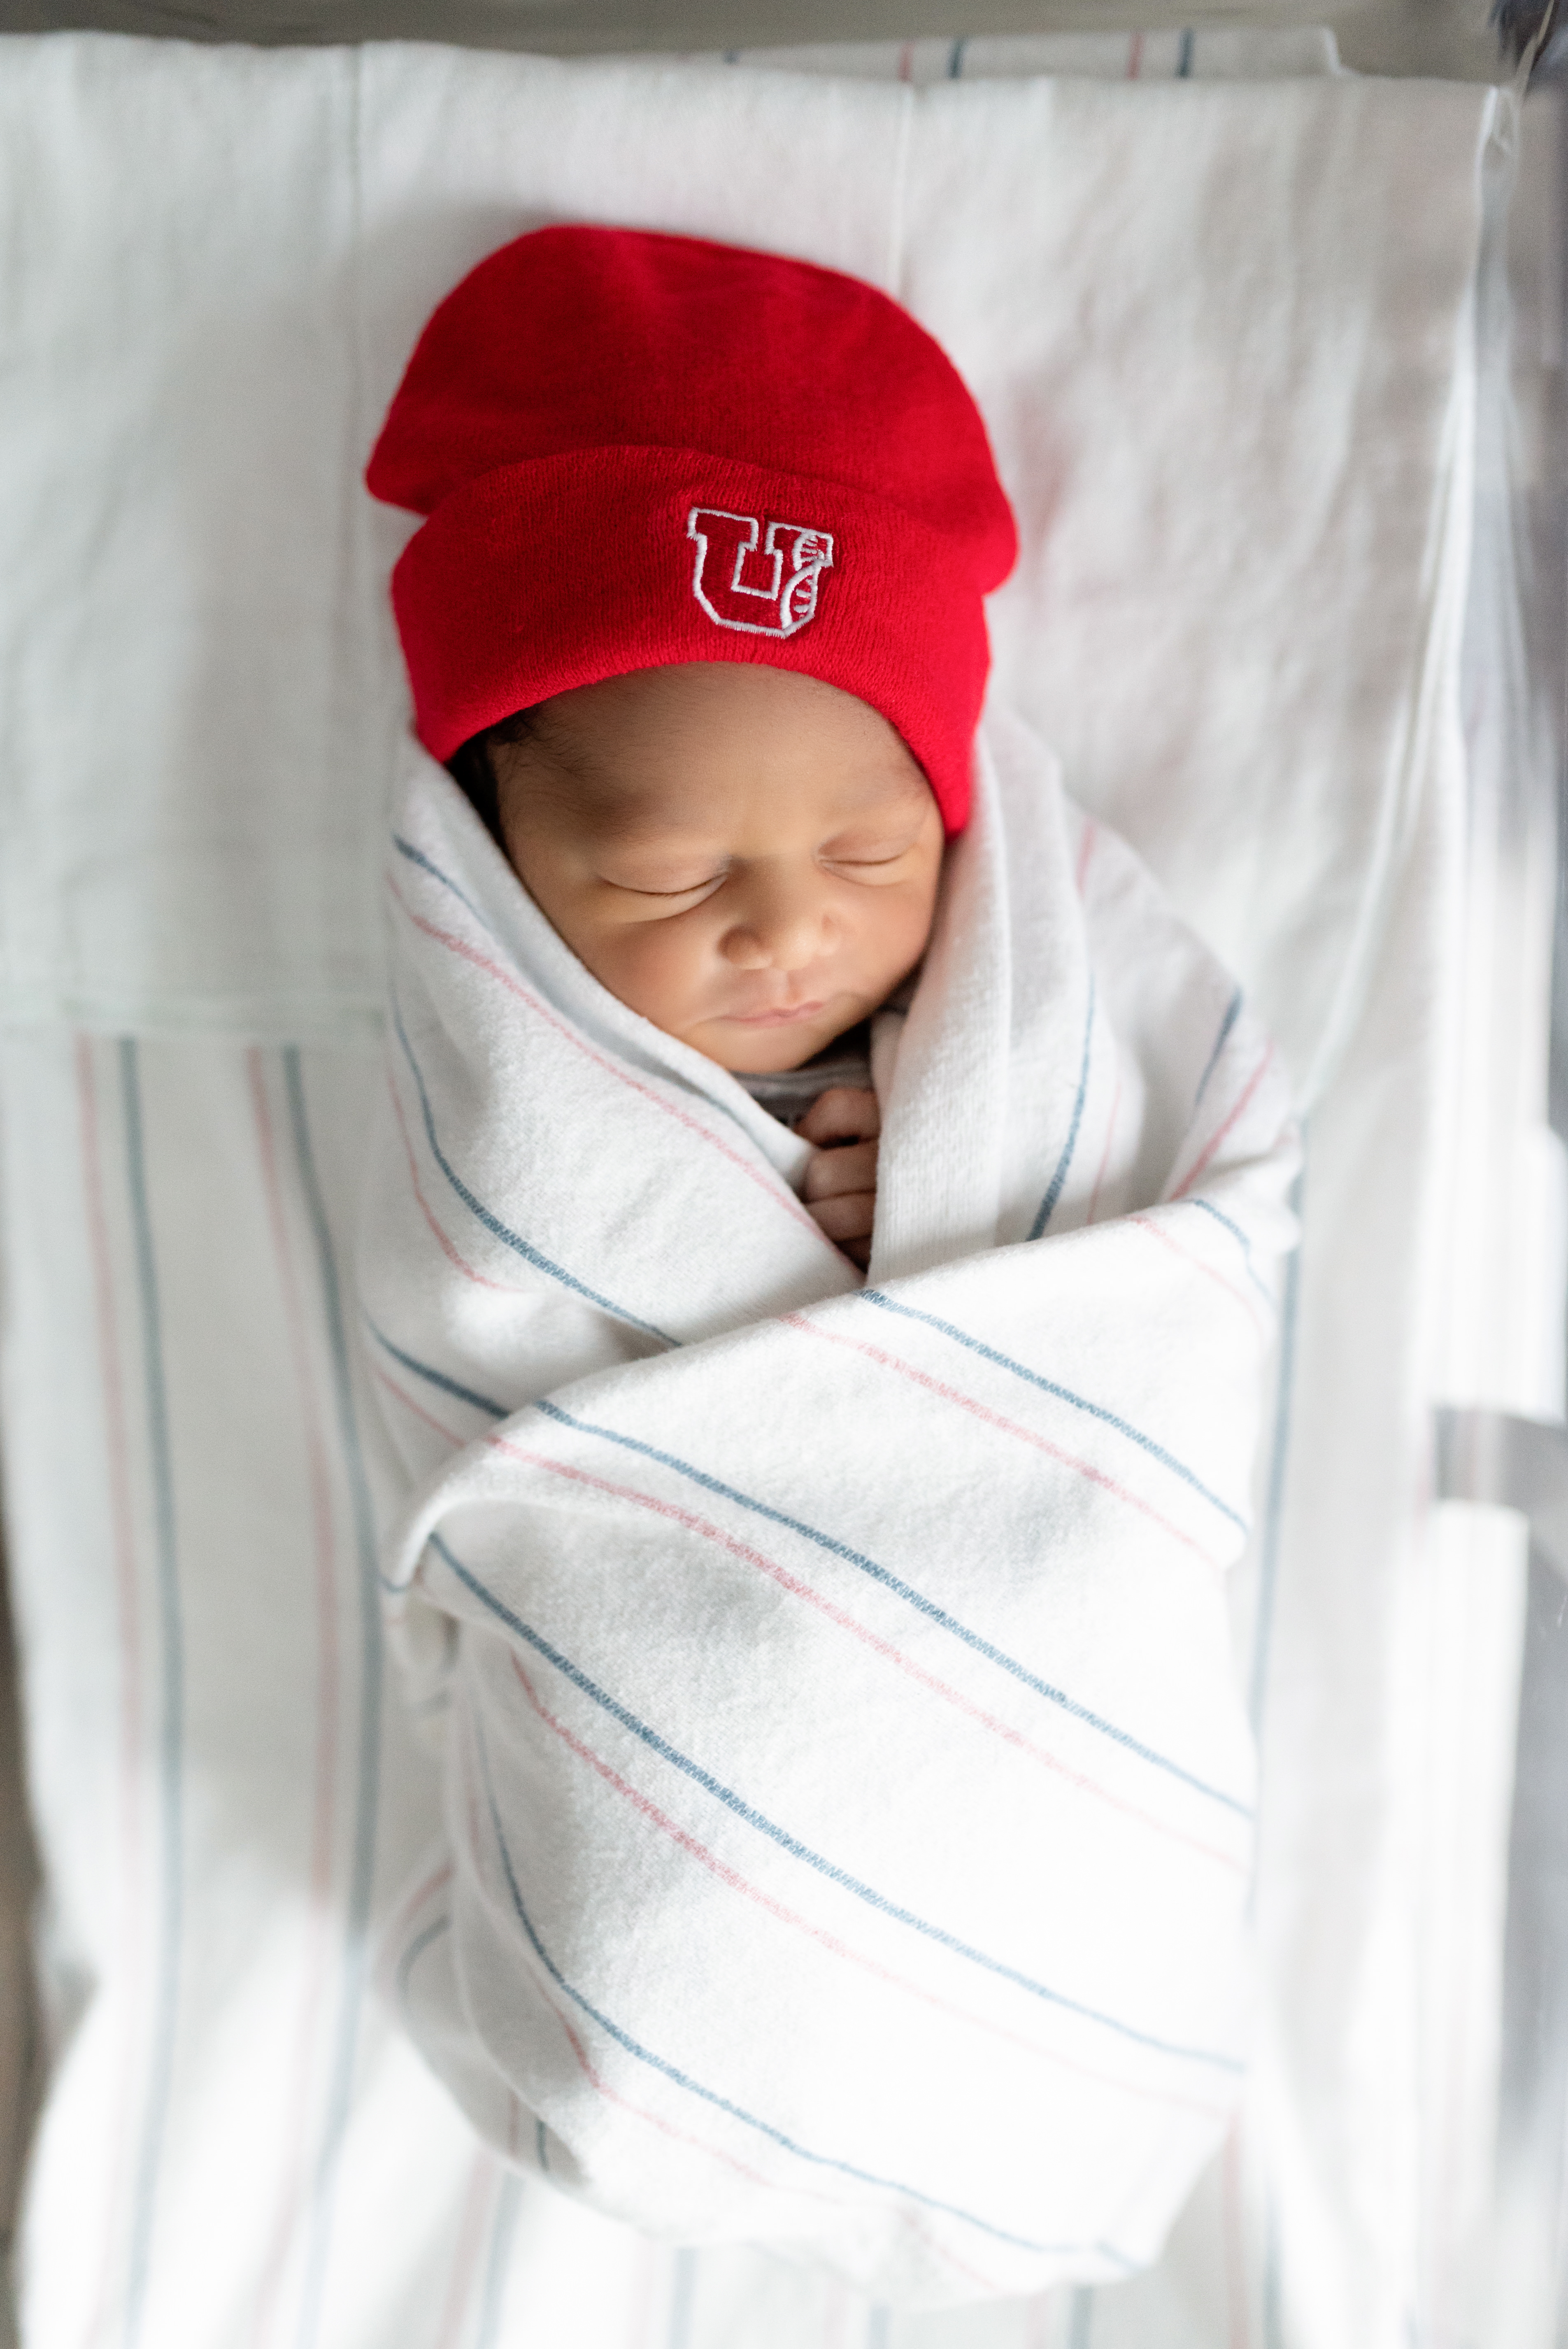 Baby in University of Utah hat sleeps in hospital bassinet during a fresh 48 photography session